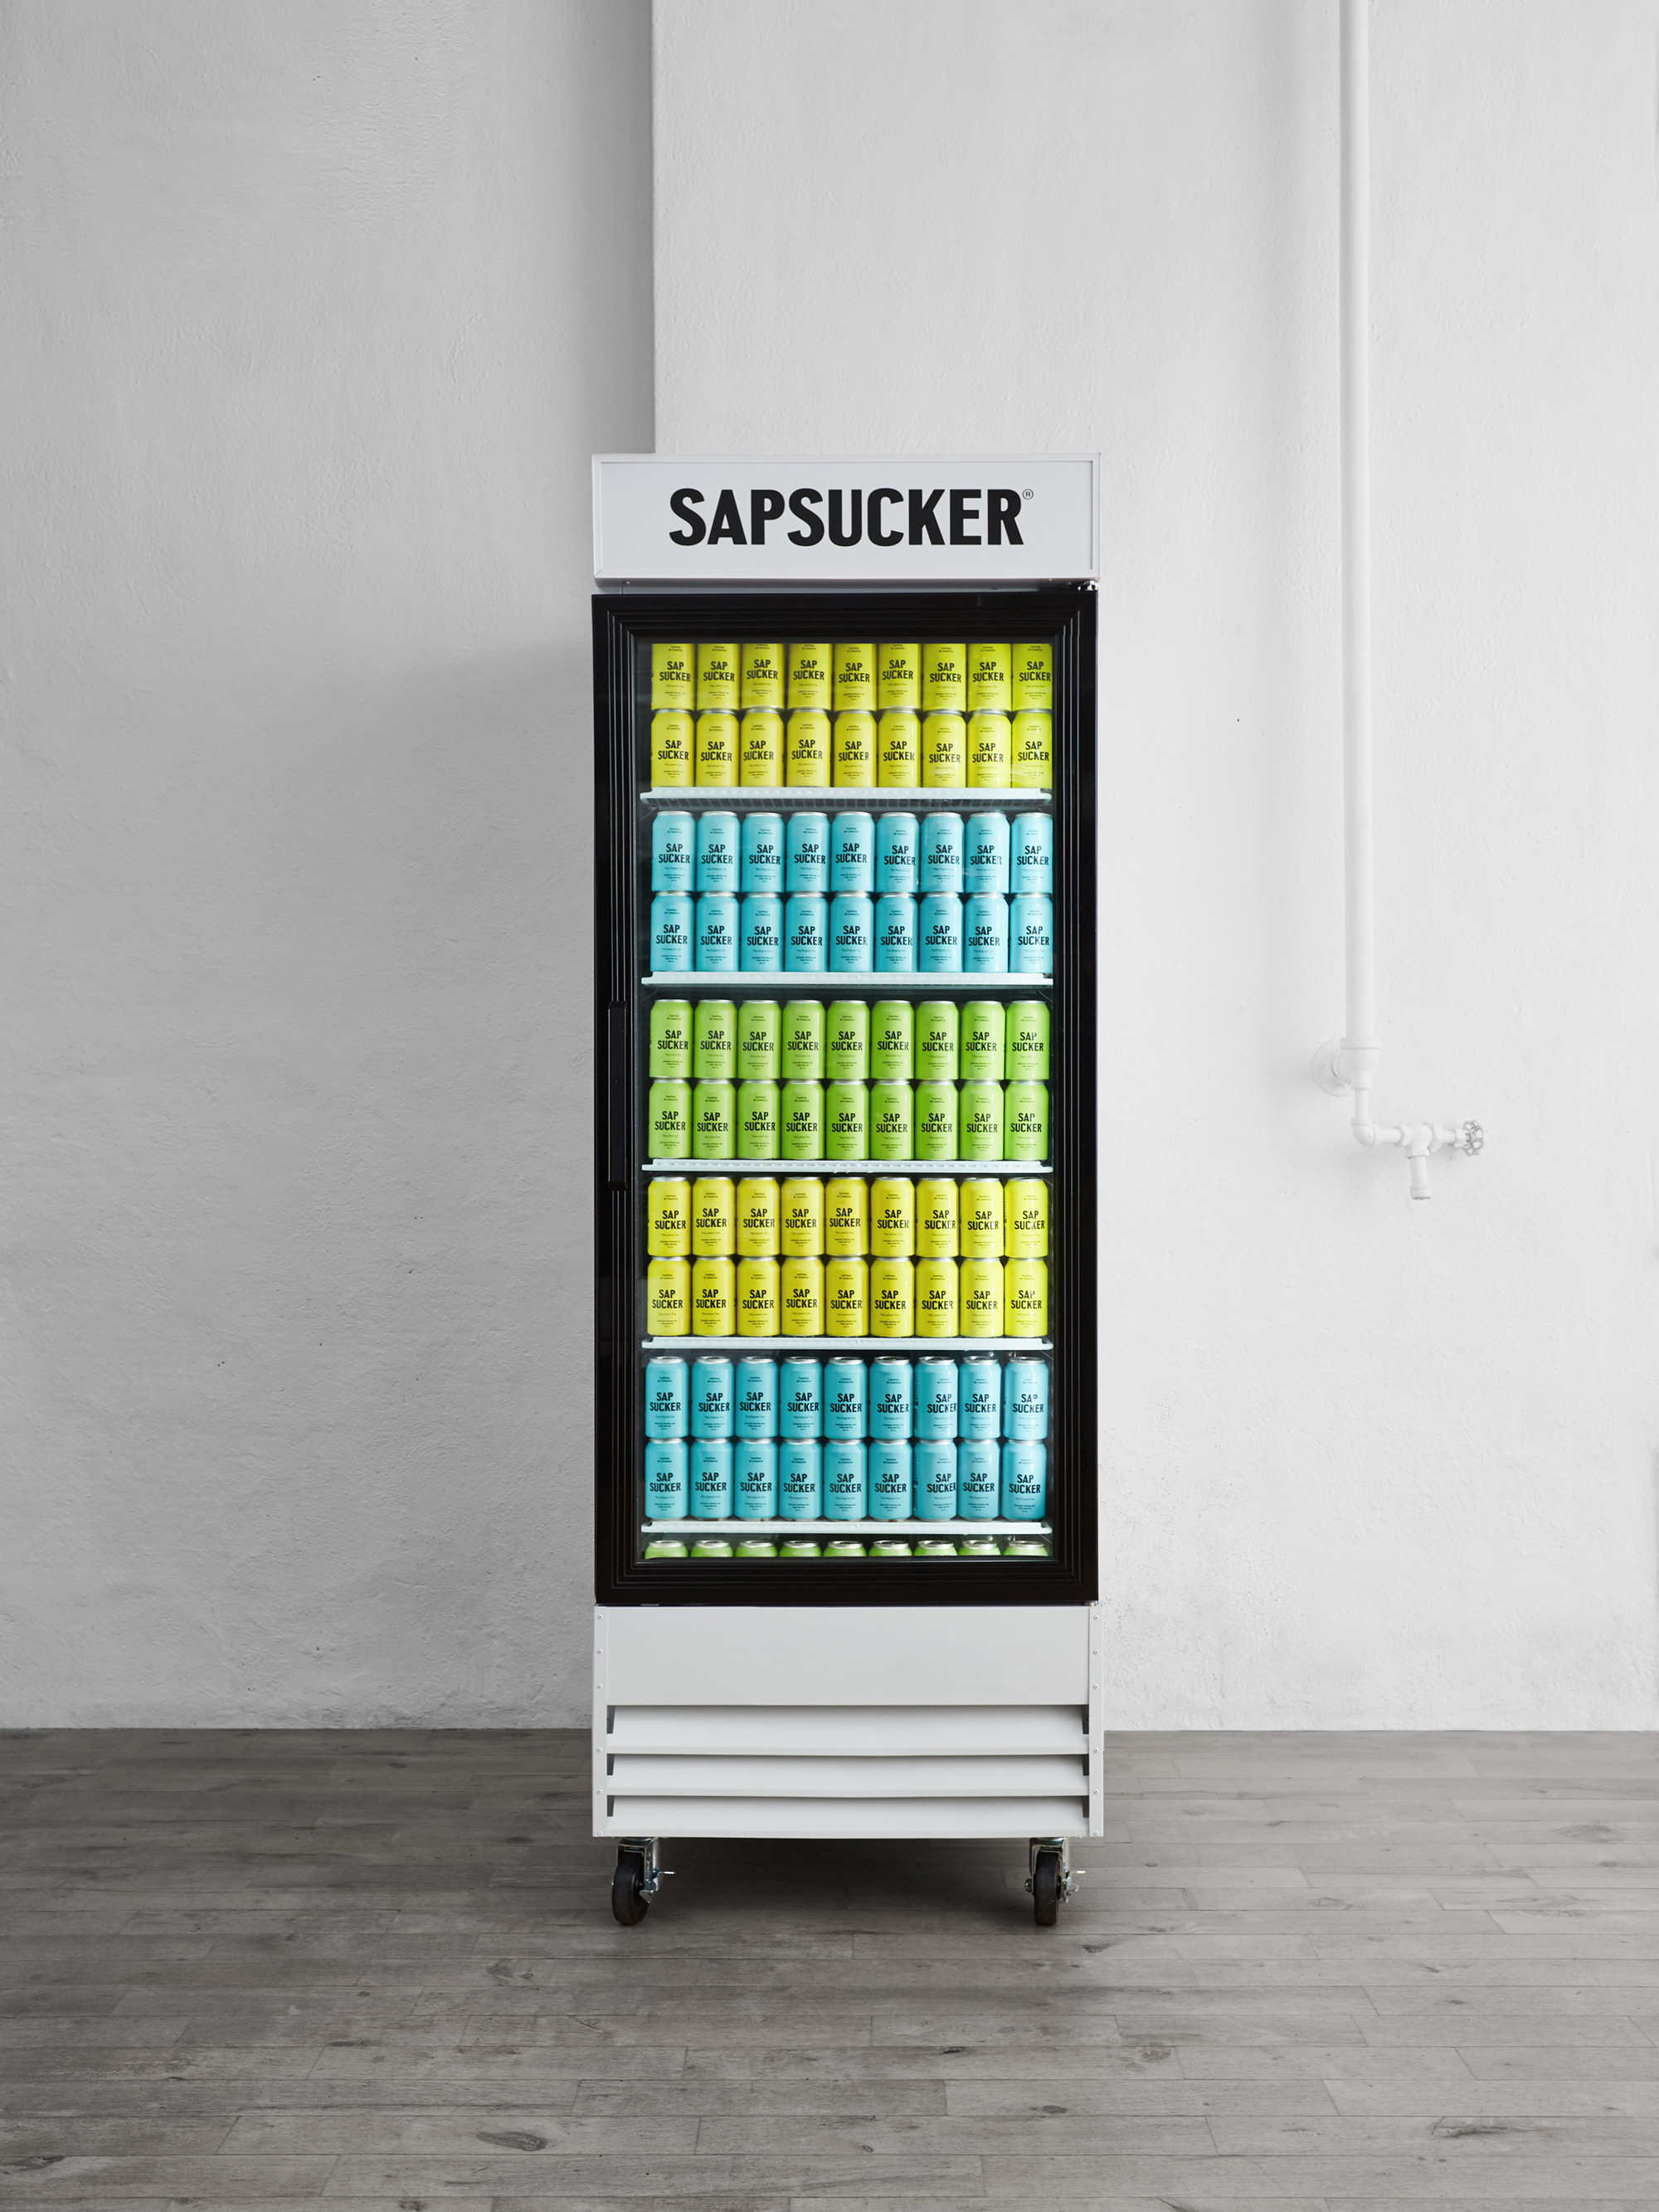 New Logo and Packaging for Sapsucker by Vanderbrand